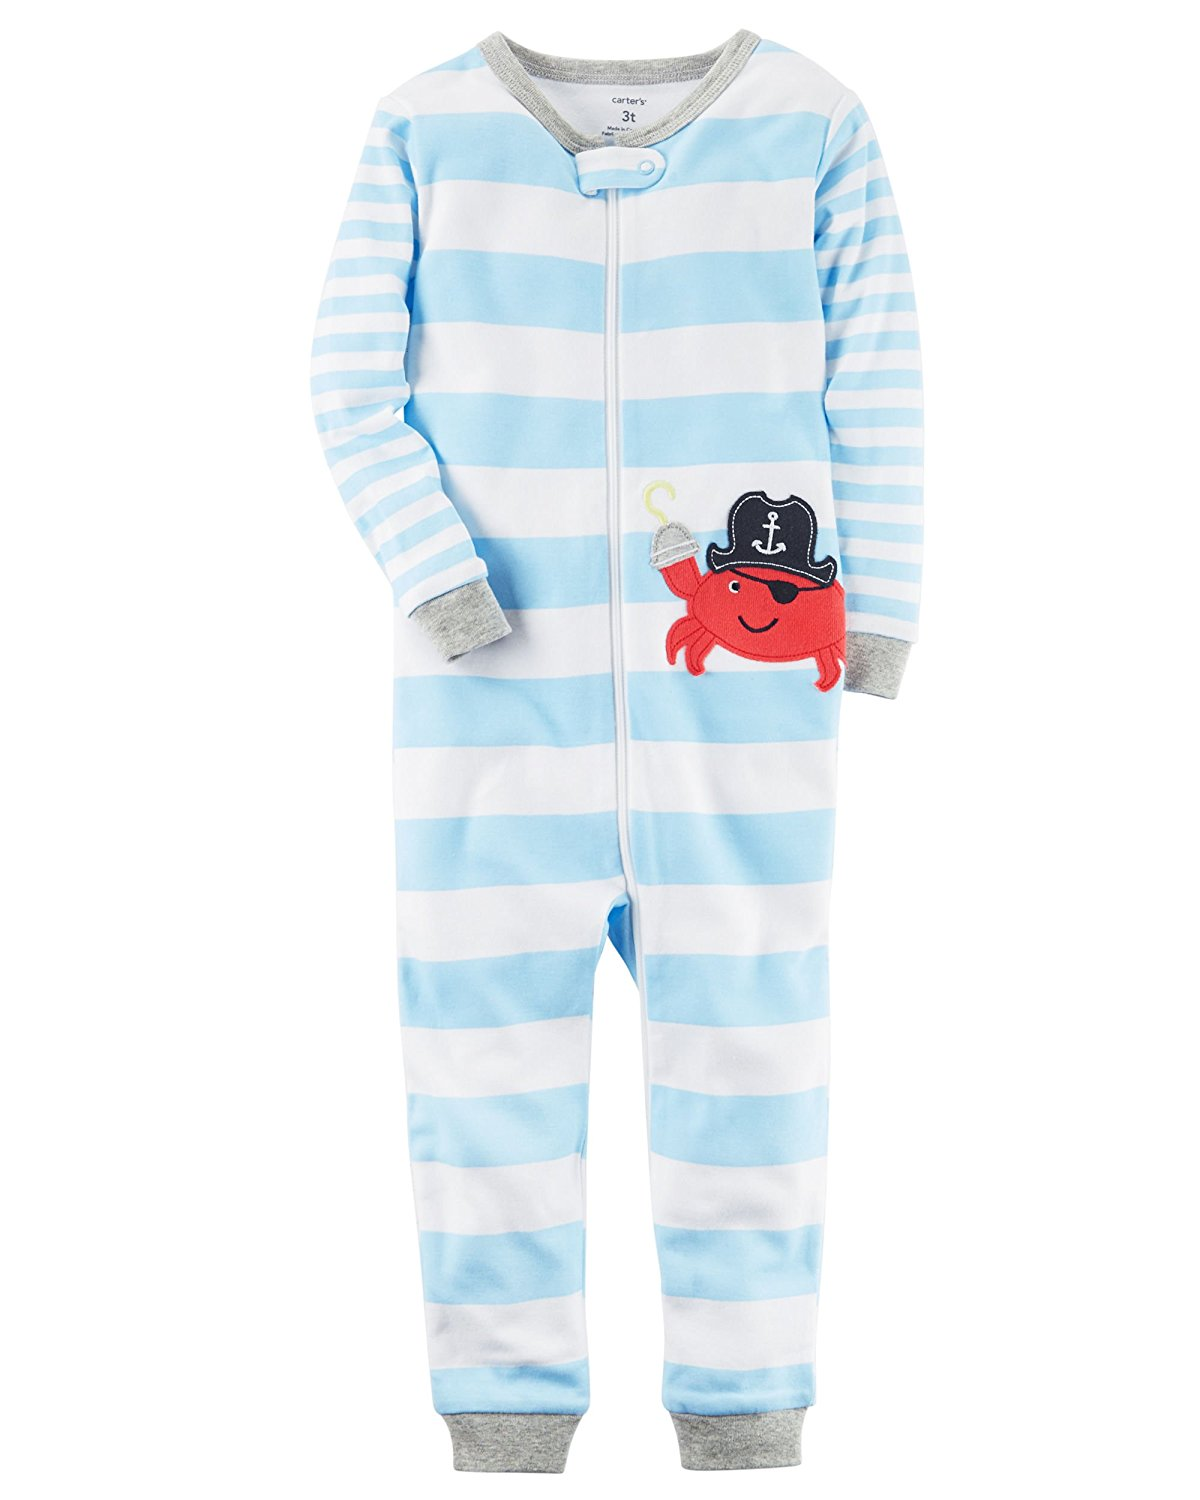 9fd2efc51237 Cheap One Piece Footless Pajamas For Adults